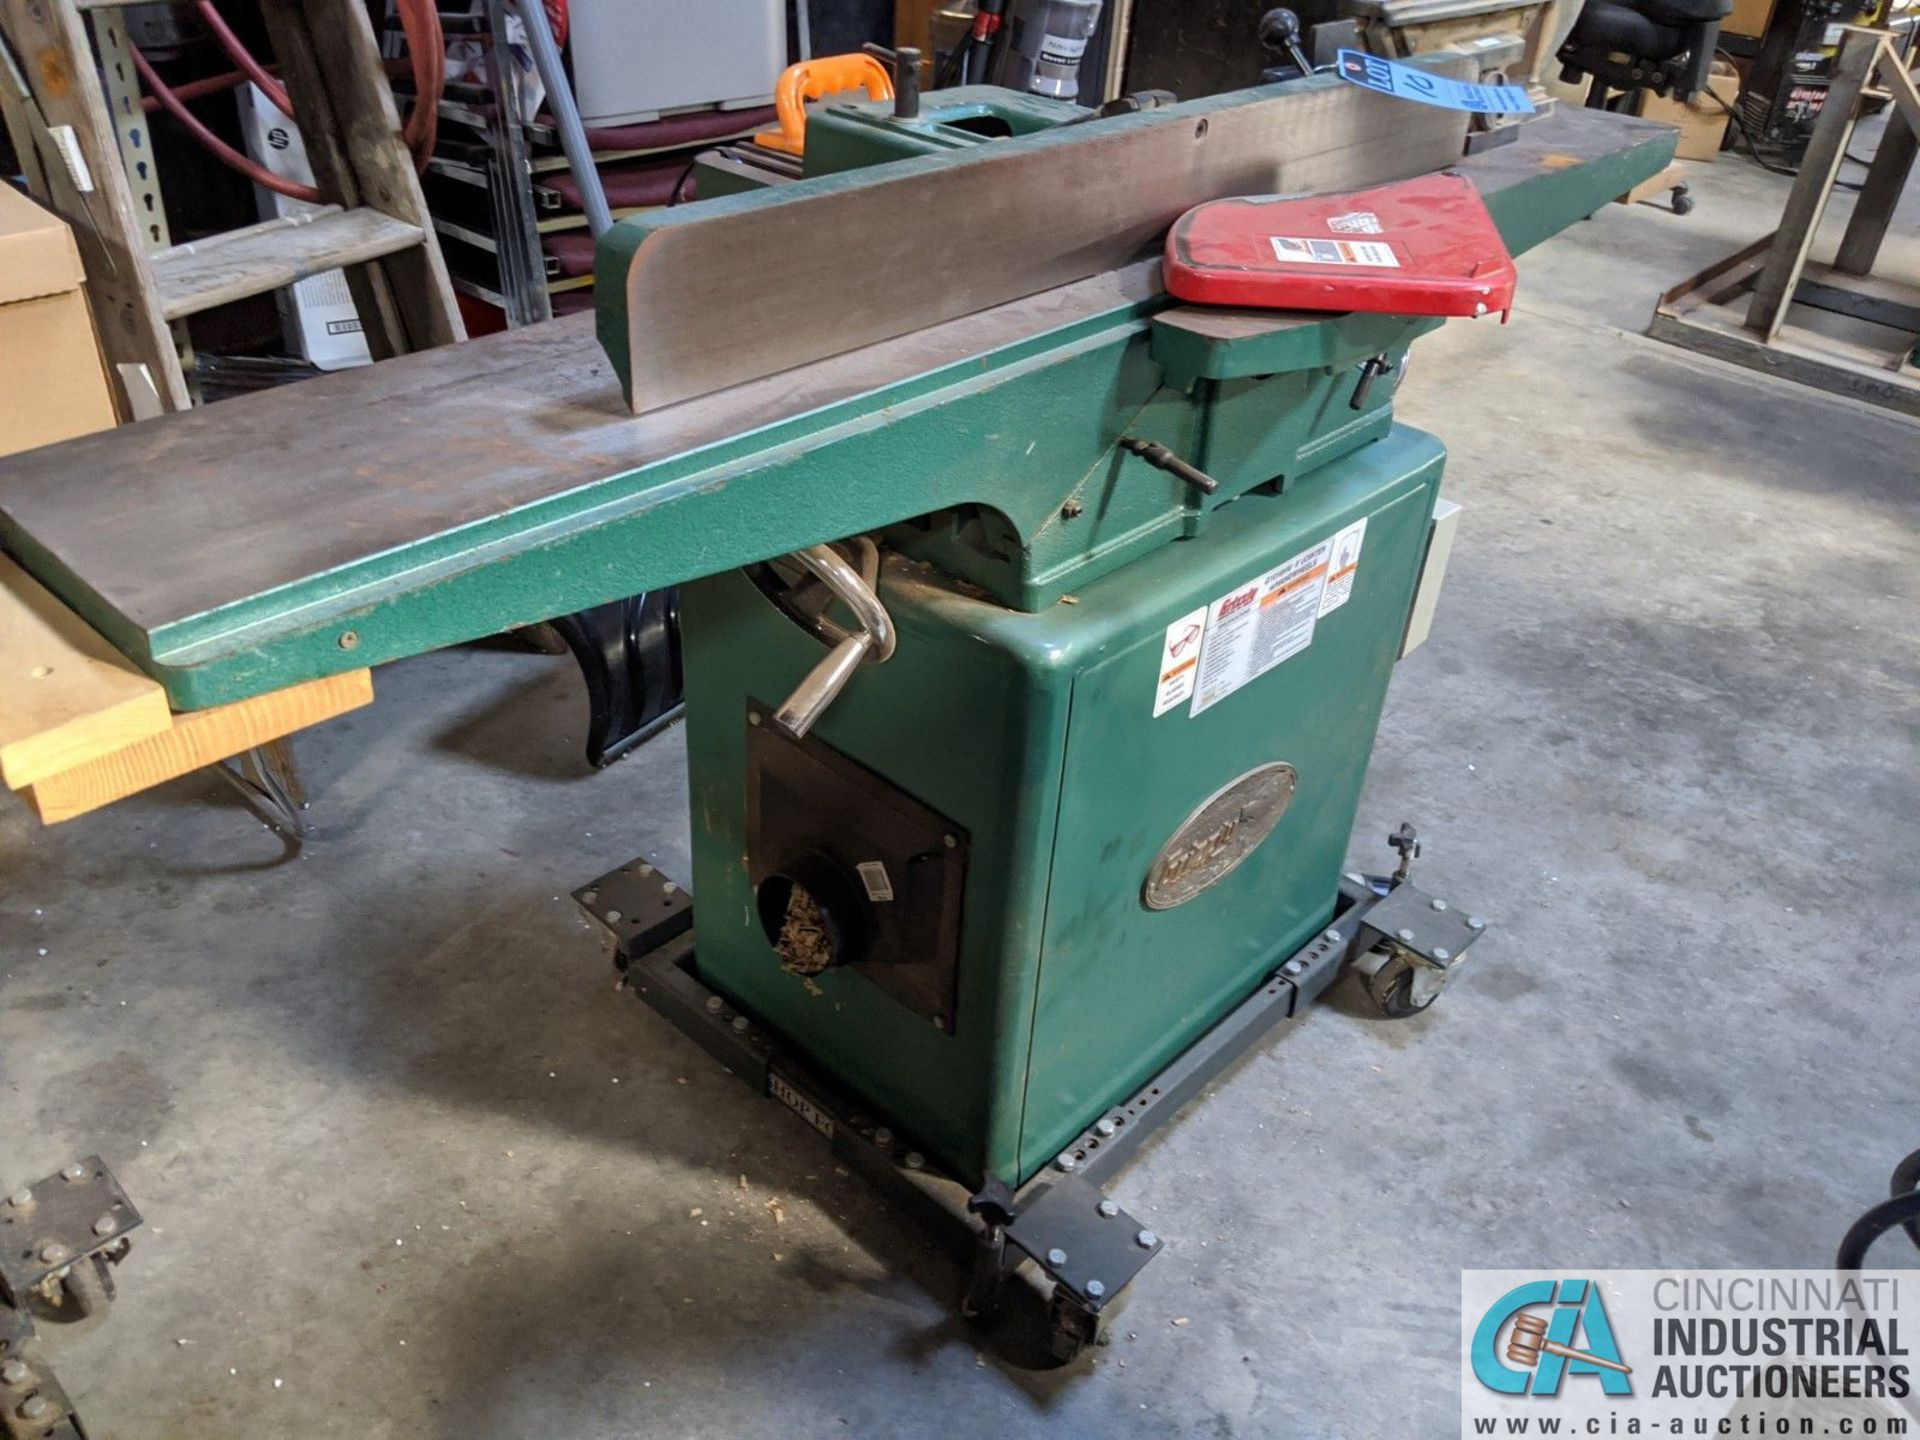 """8"""" GRIZZLY MODEL G1018HW JOINTER; S/N 6388108, 9"""" X 65"""" TABLE (8635 East Ave., Mentor, OH 44060 - - Image 3 of 7"""